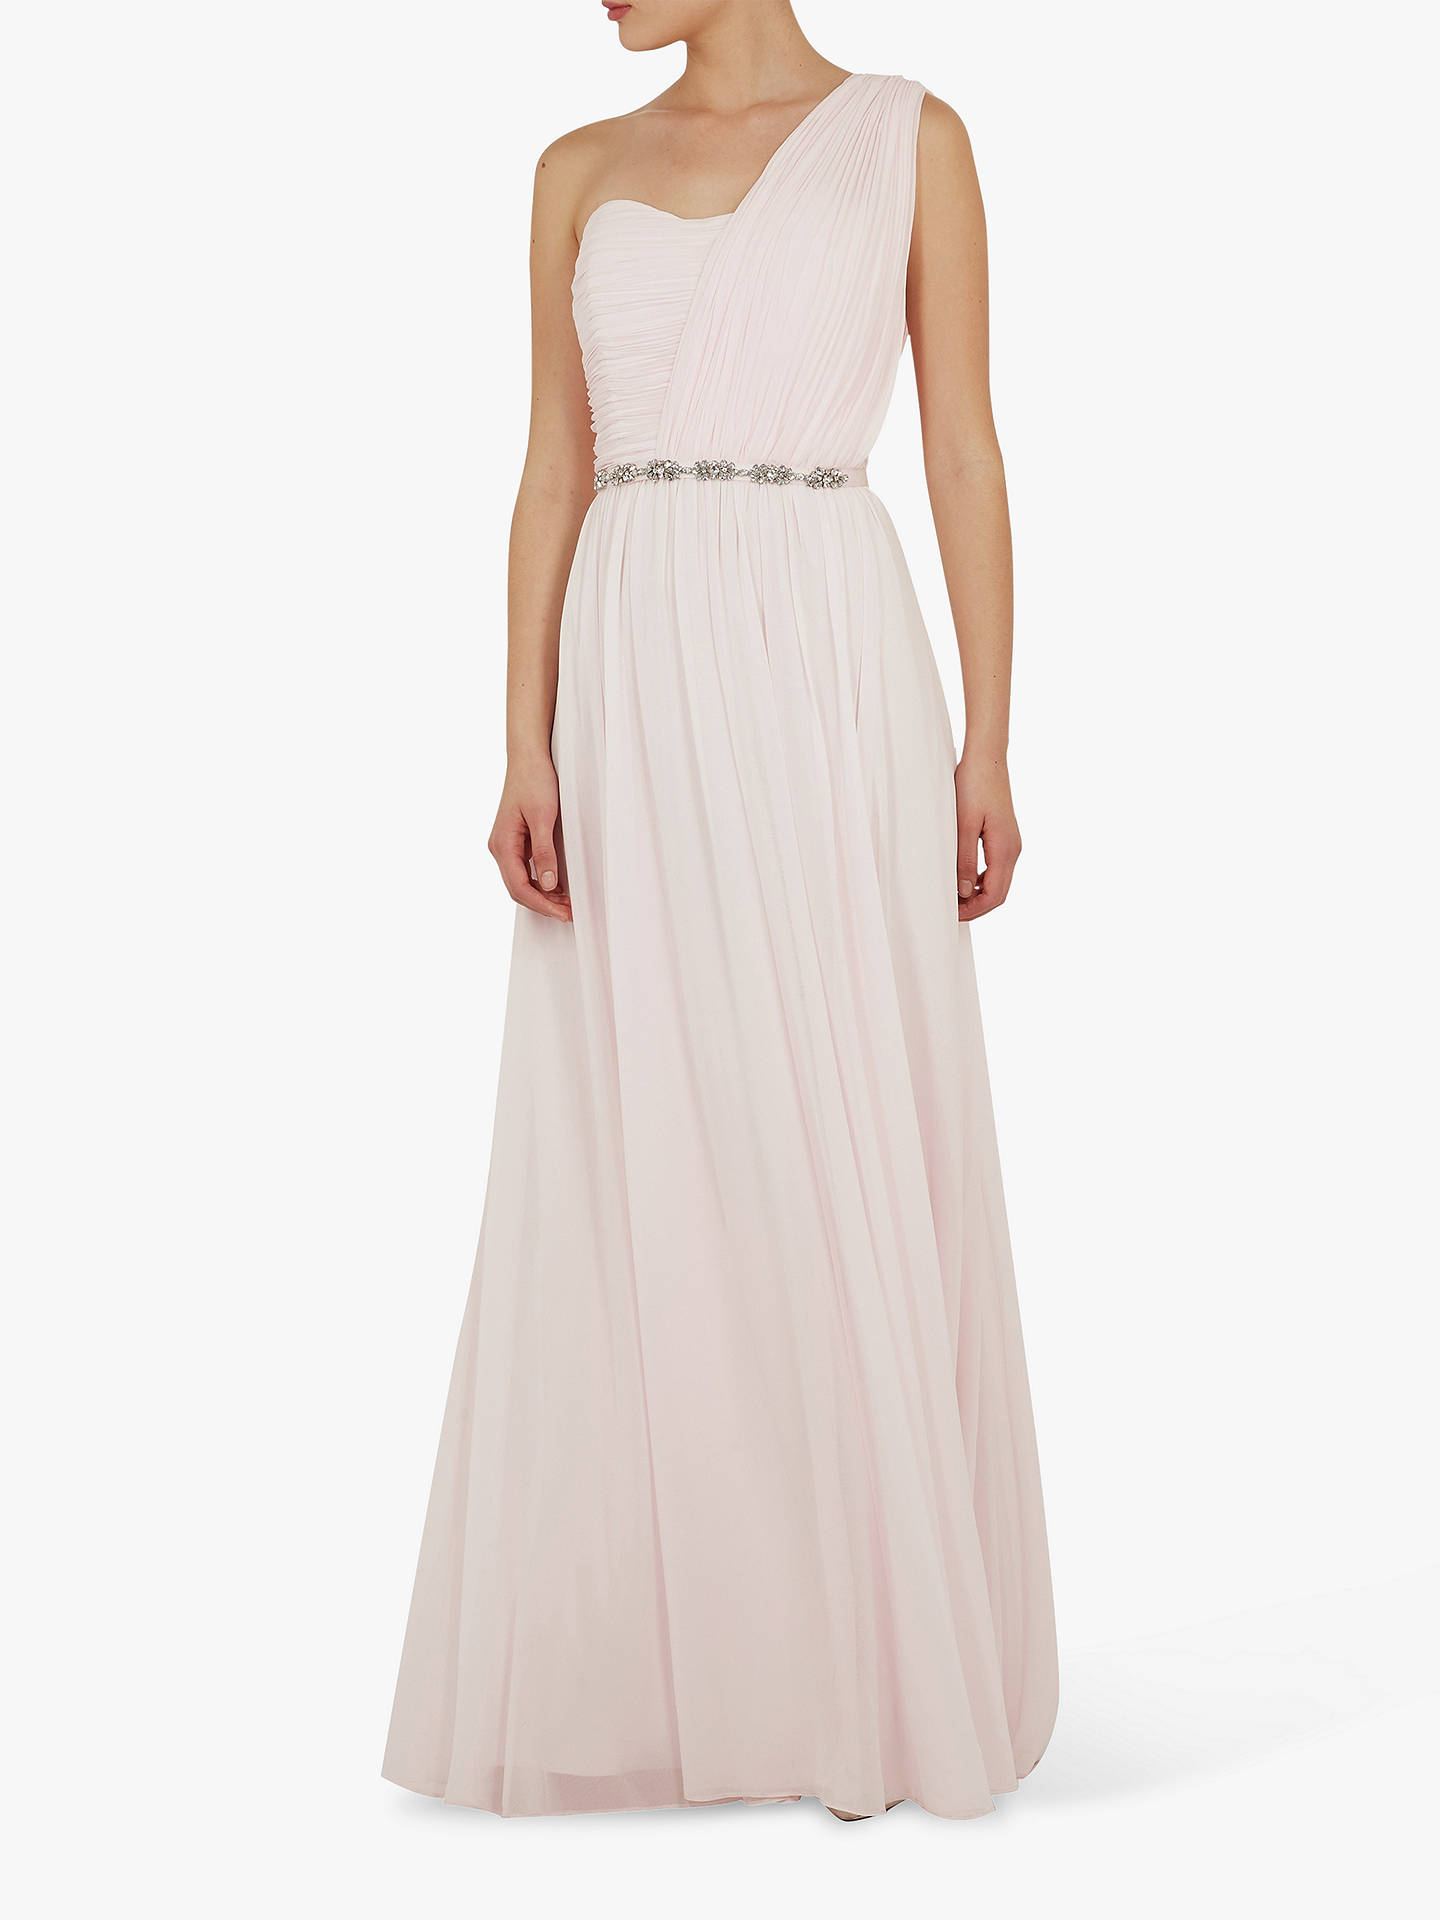 7db601cc7c5d96 Ted Baker Finella Belt Maxi Dress at John Lewis   Partners